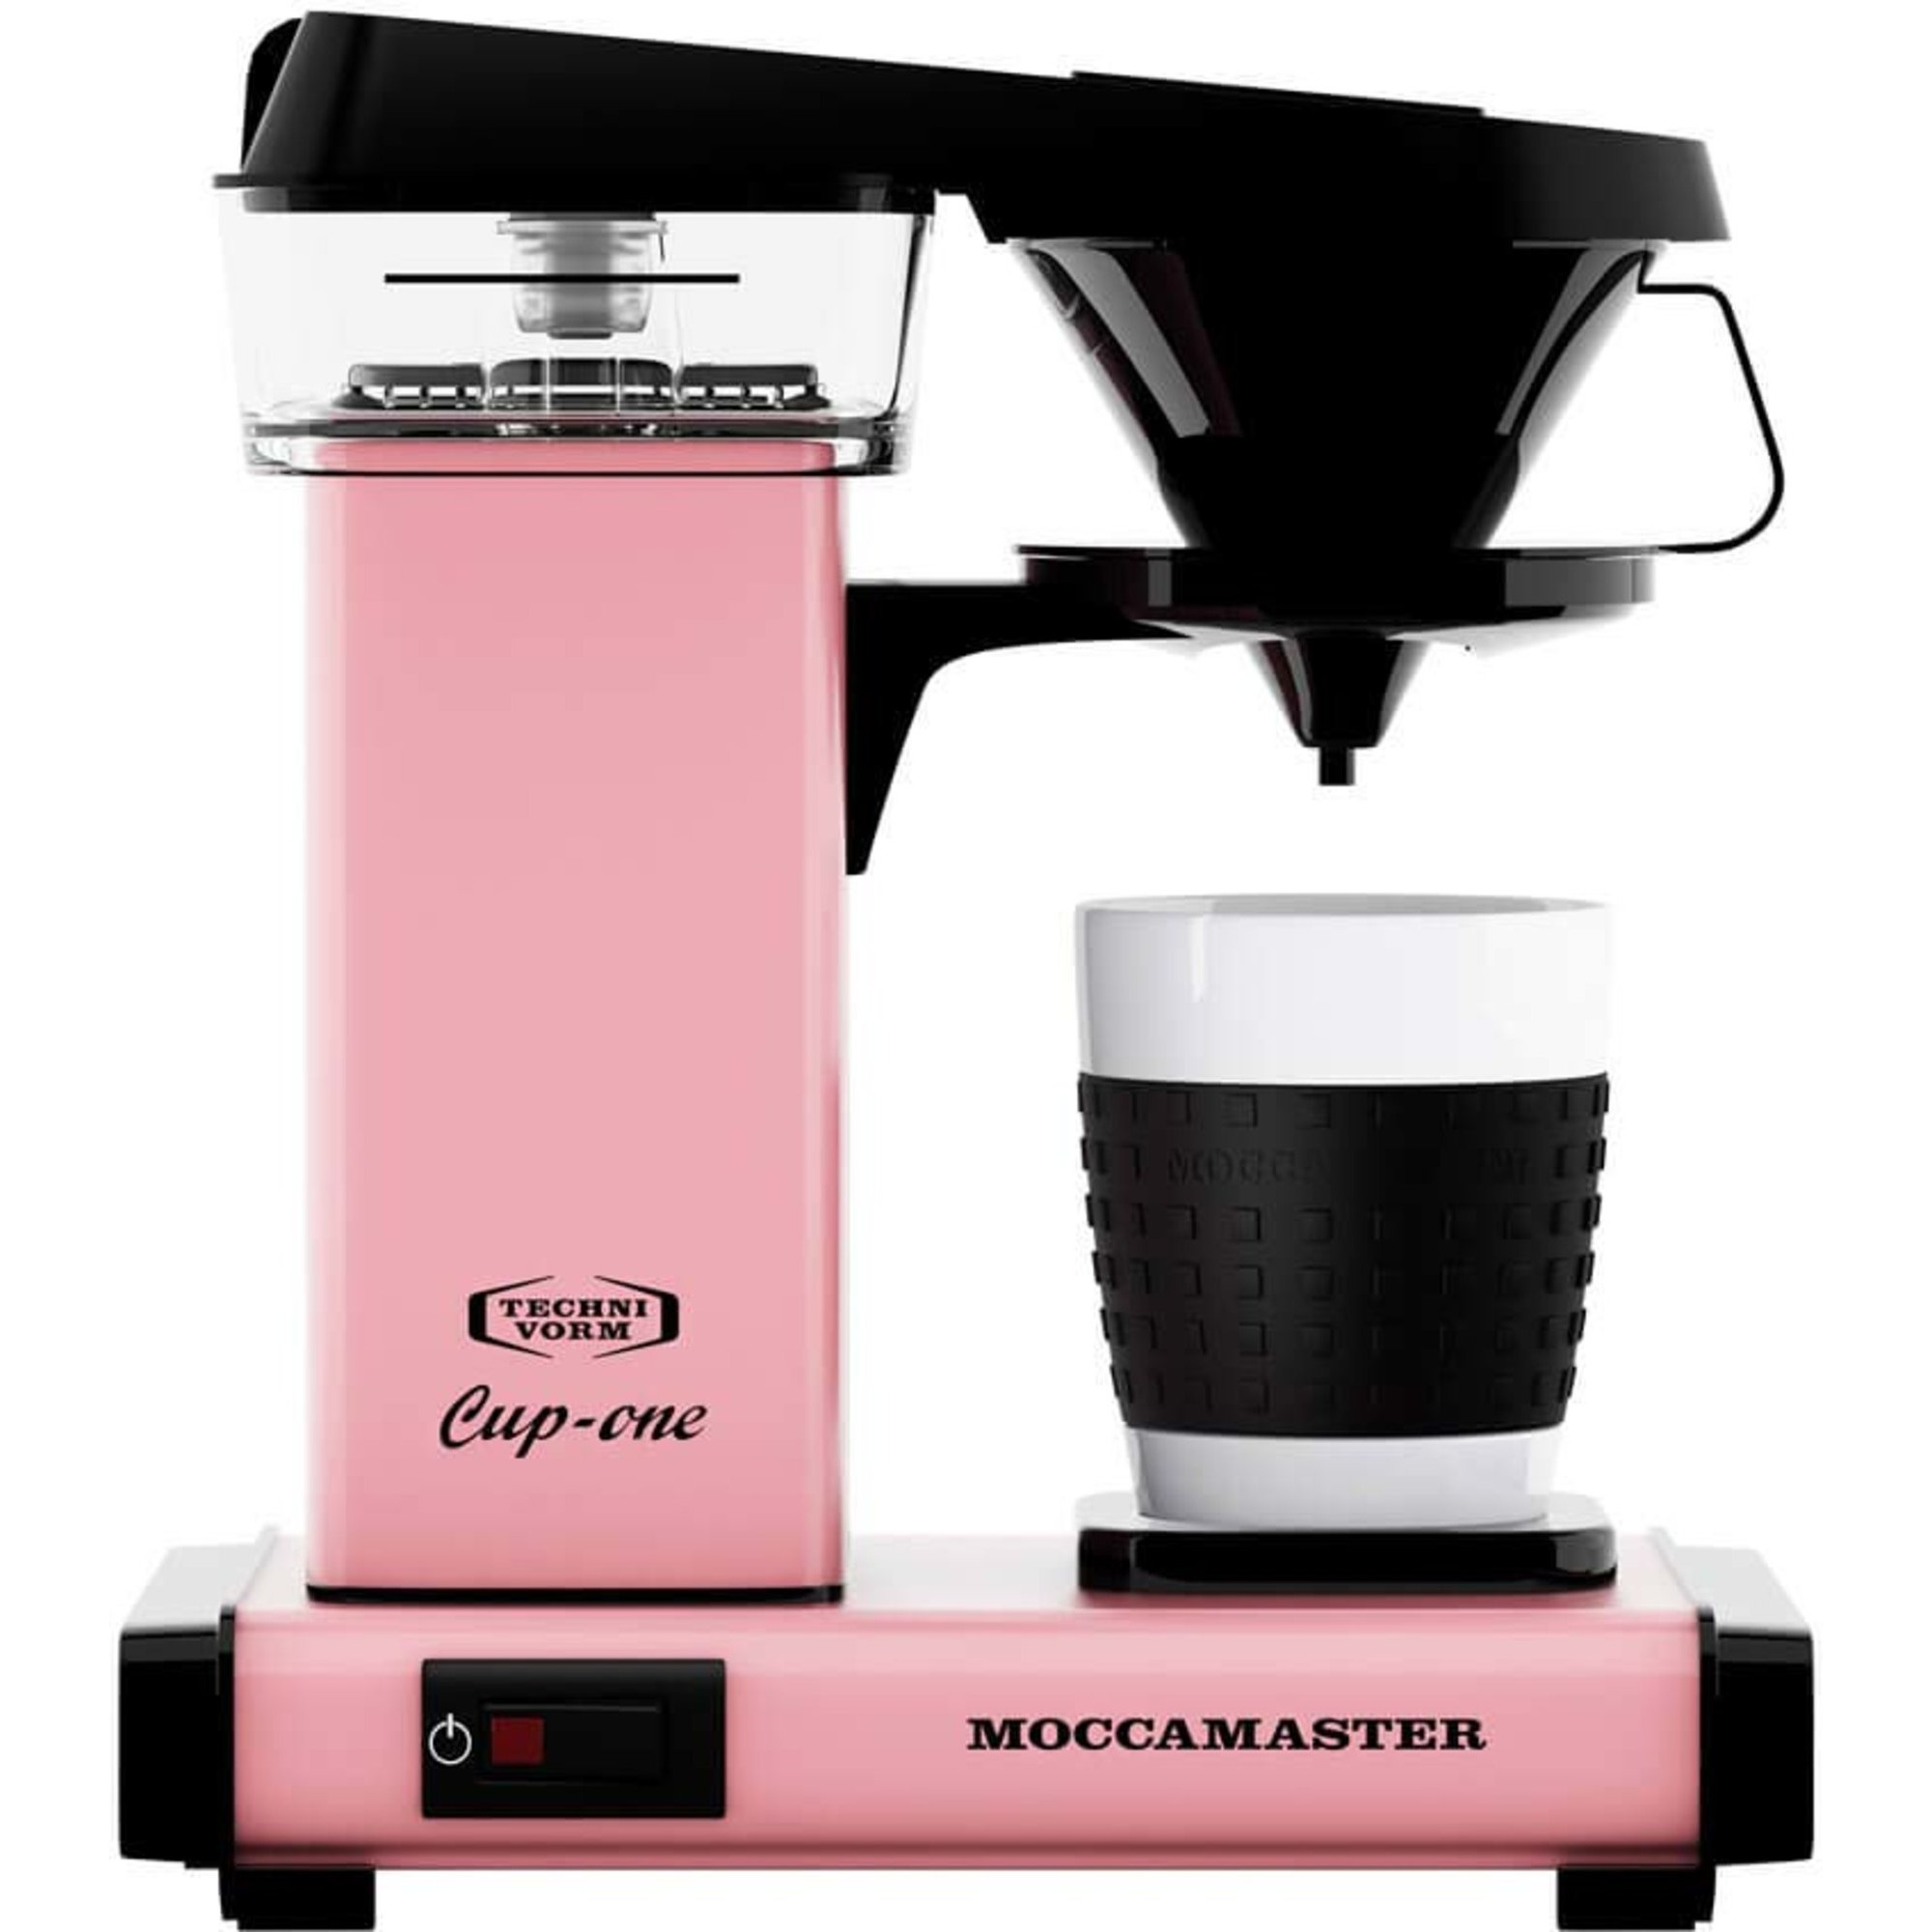 Moccamaster Kaffebryggare Cup One Rosa